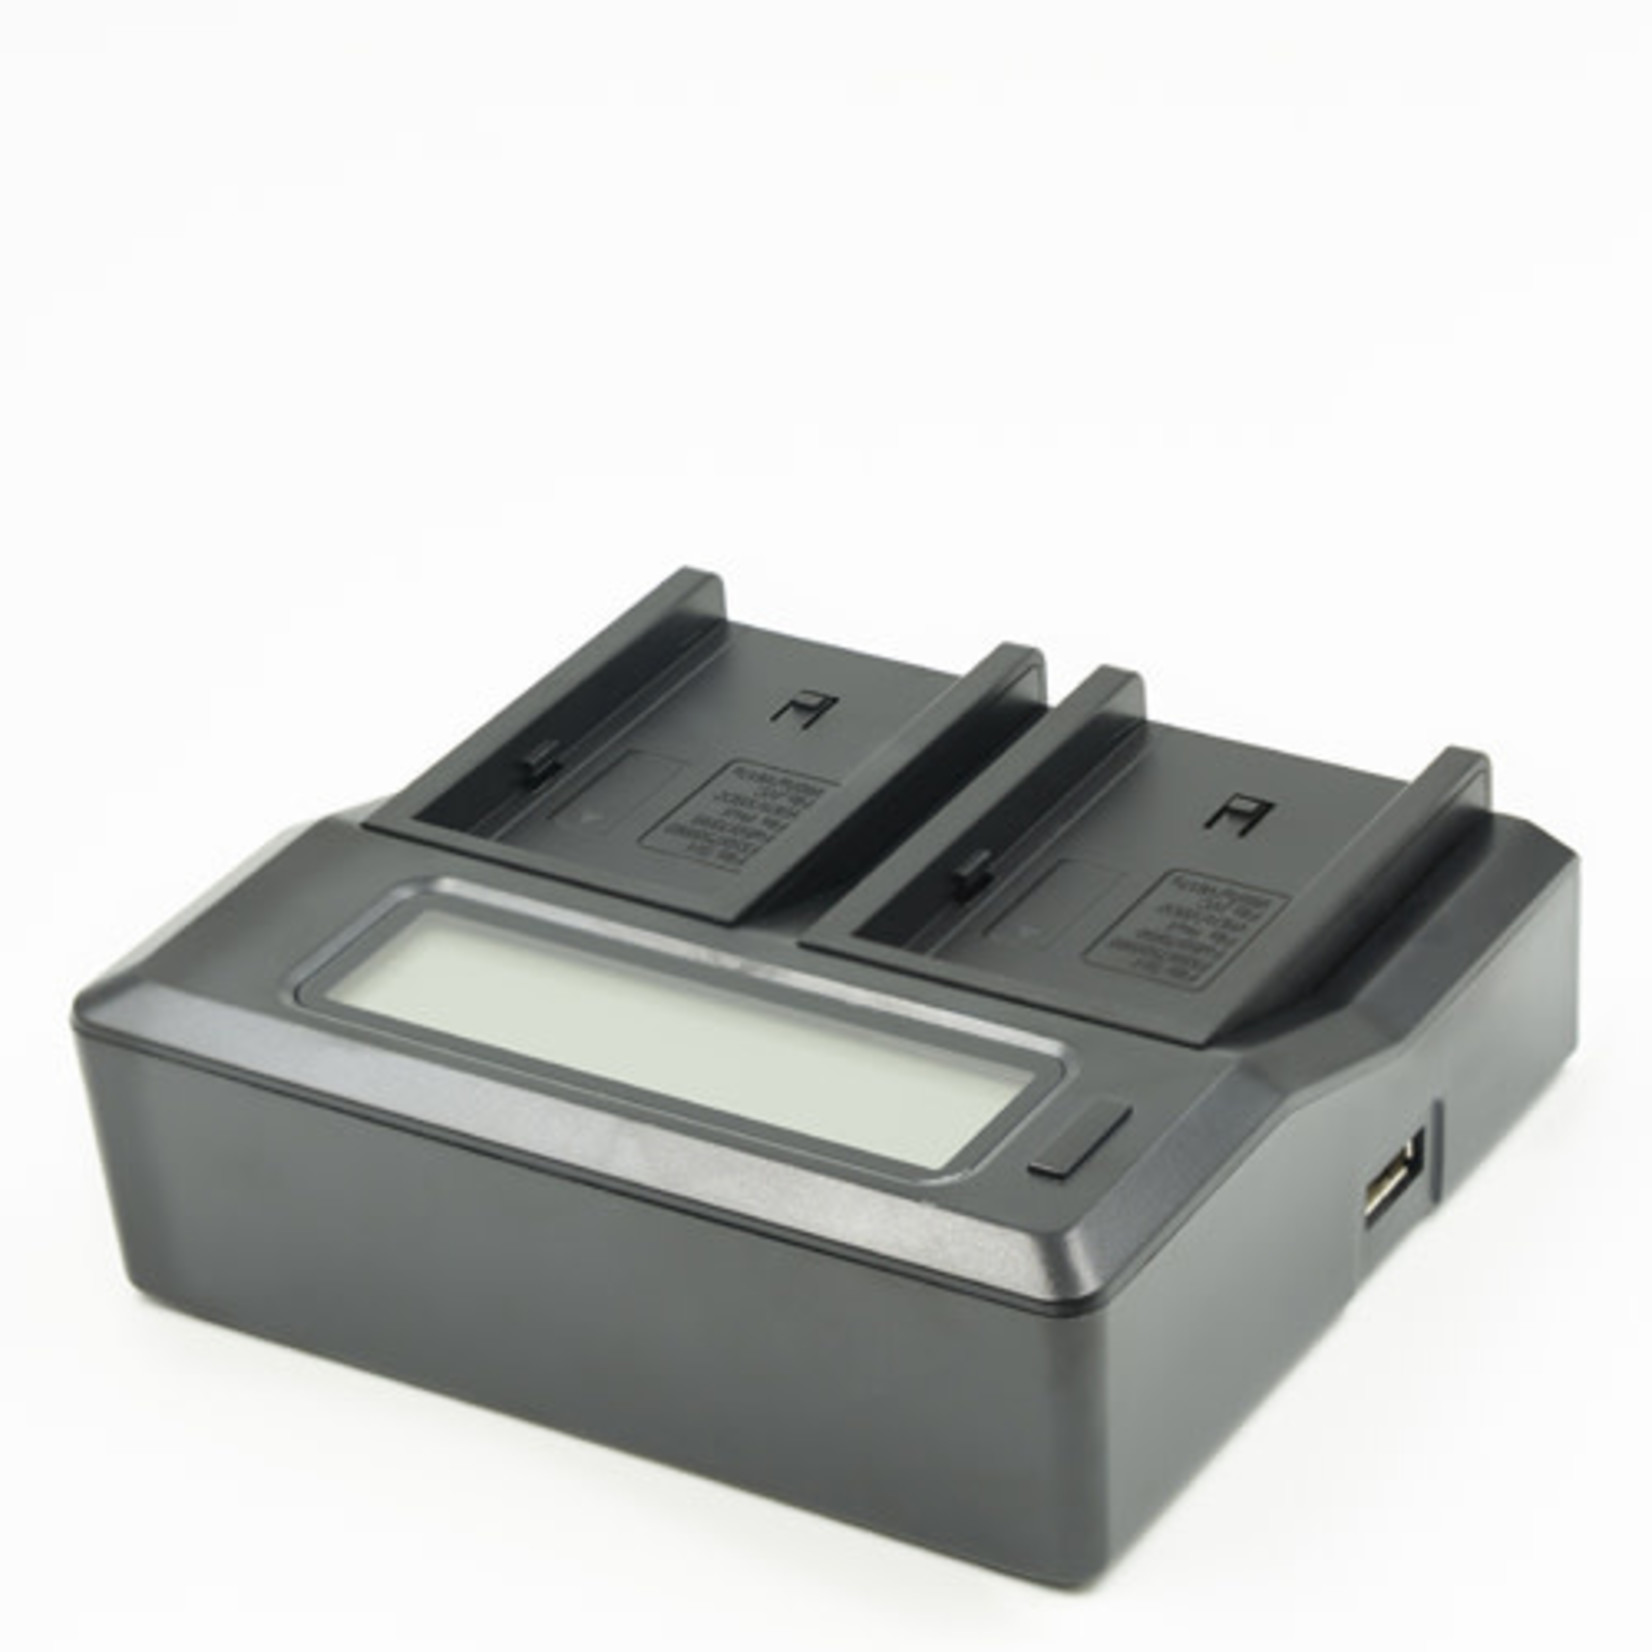 ProMaster Li-ion Battery for Sony - Dual Battery / Charger Kit NP-F770